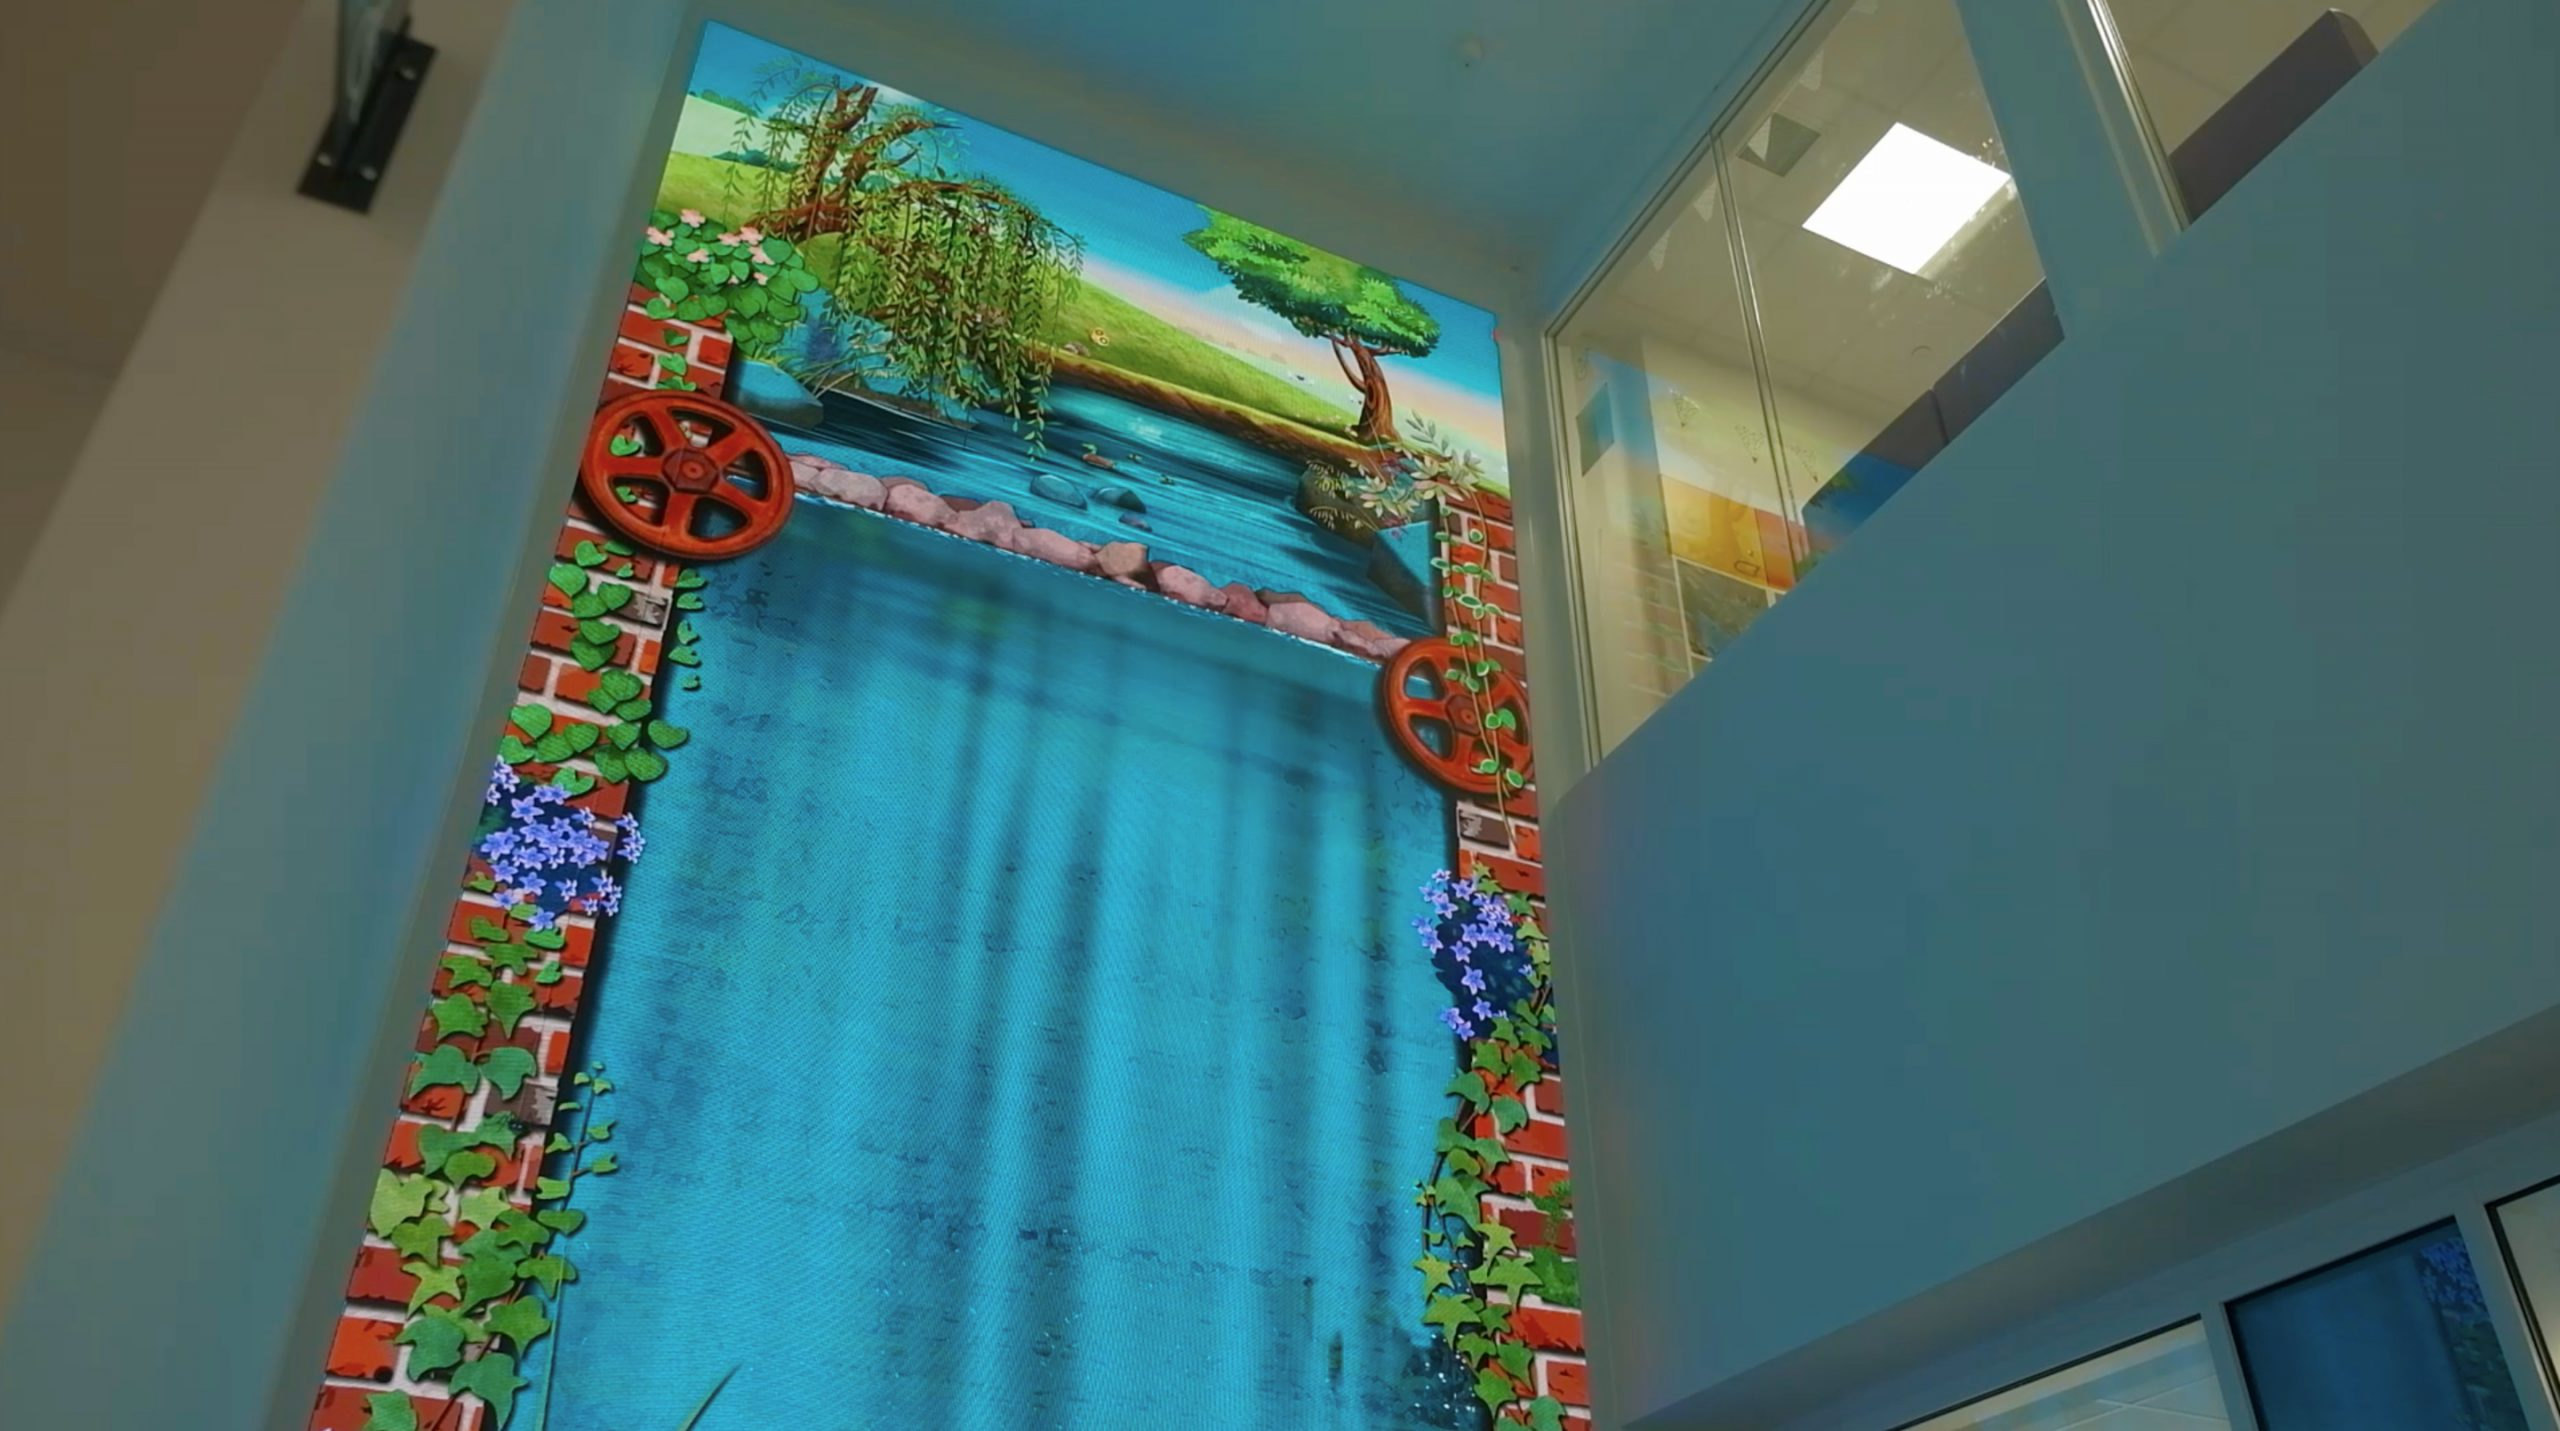 7 meter tall interactive waterfall with animated landscape on to